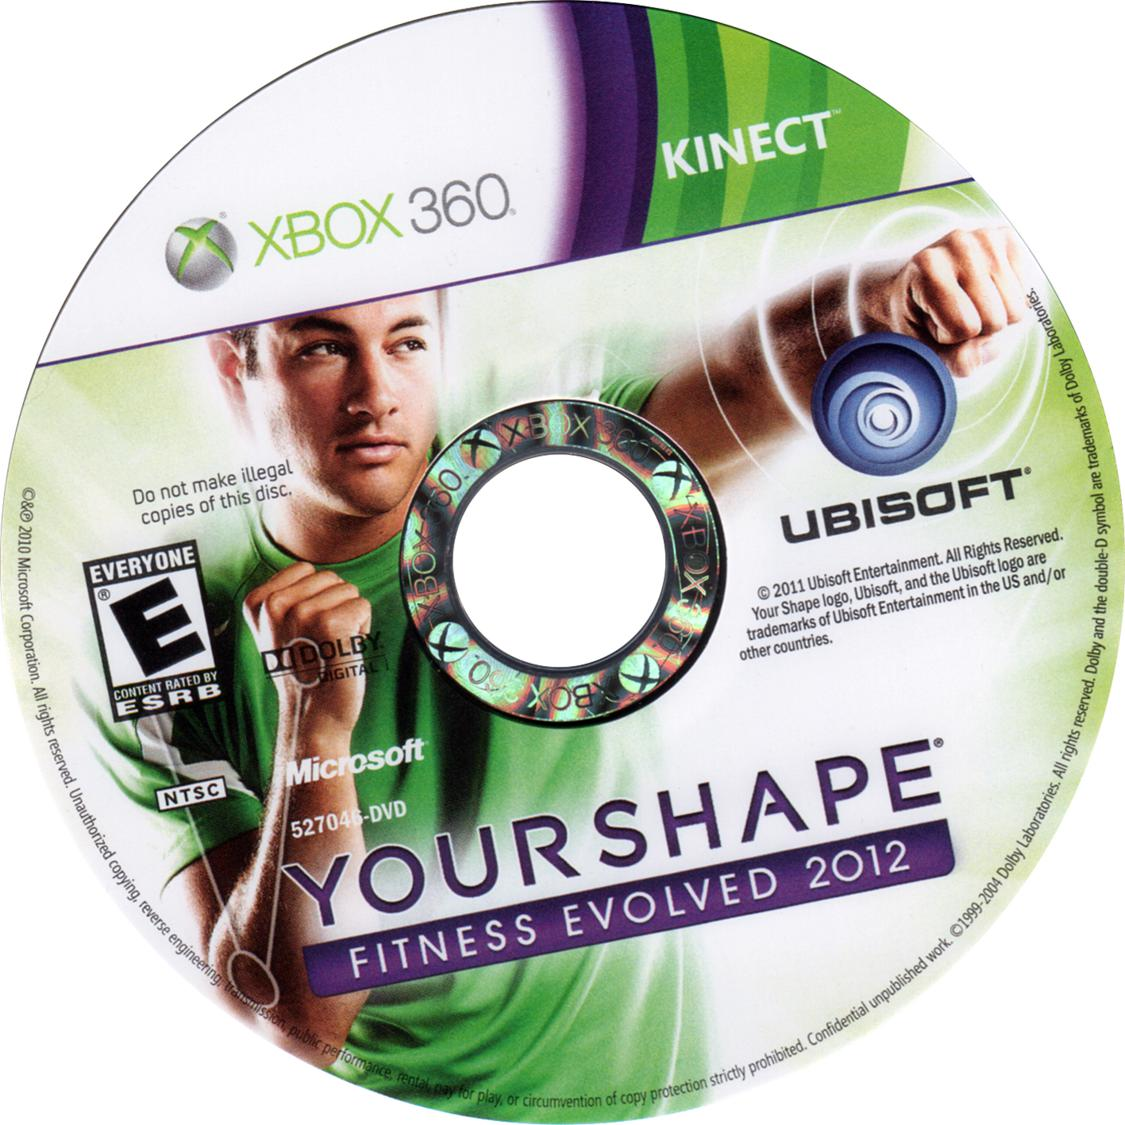 Your shape fitness evolved 2012 (xbox 360 kinect)